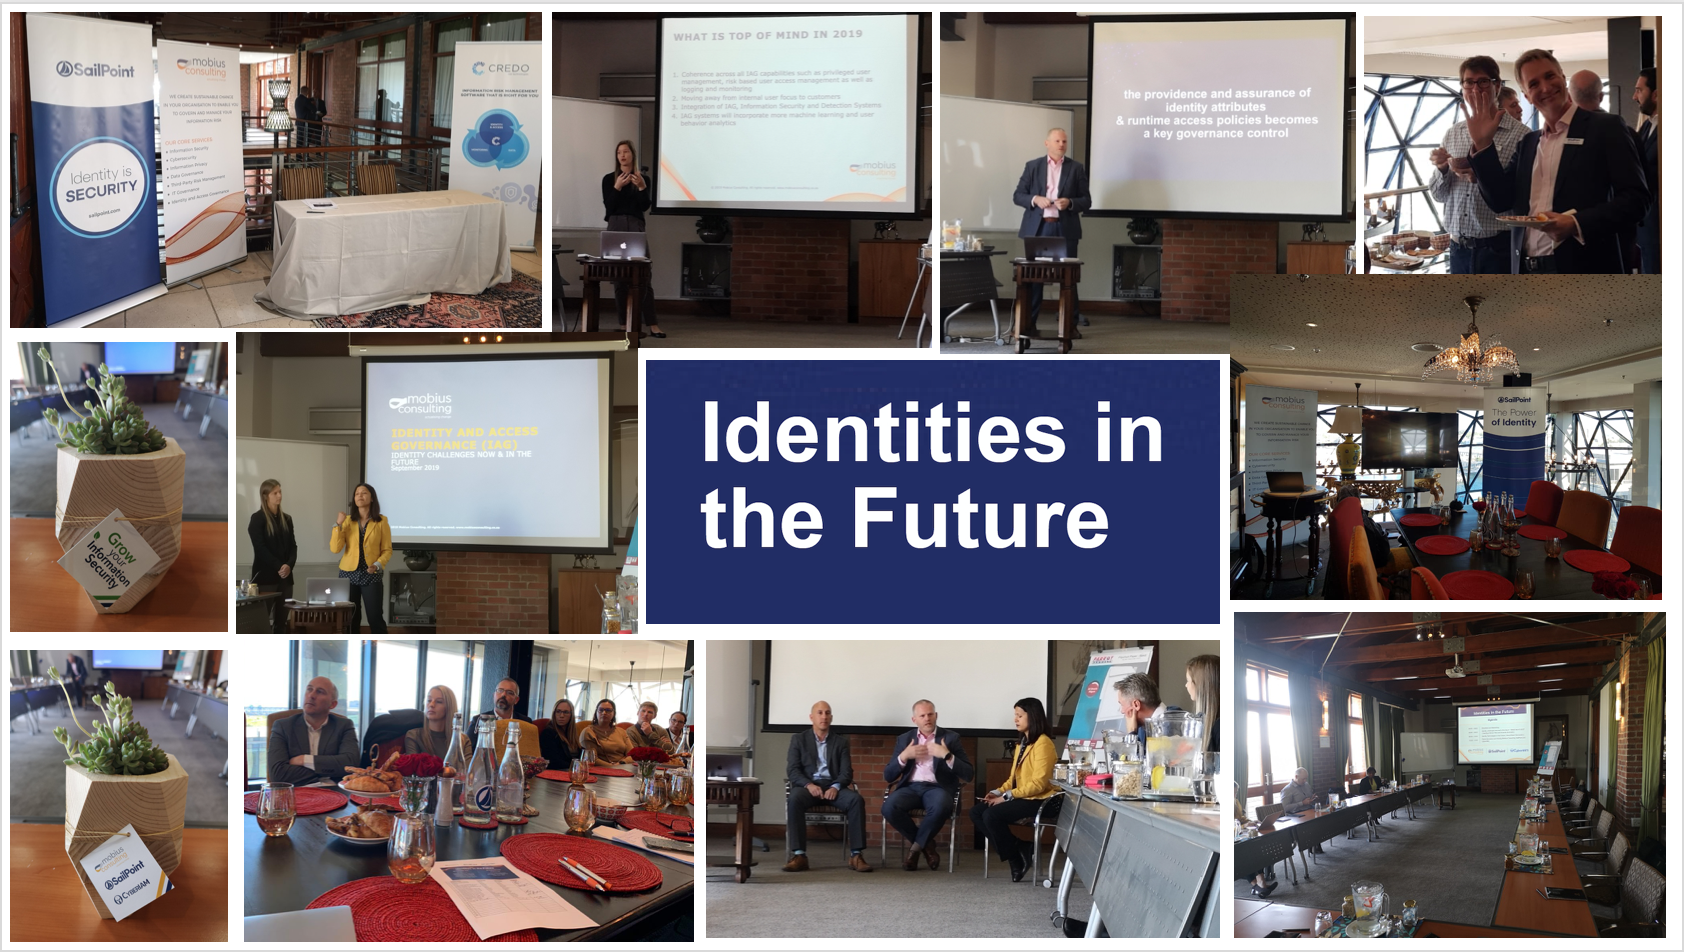 Identities in the Future event